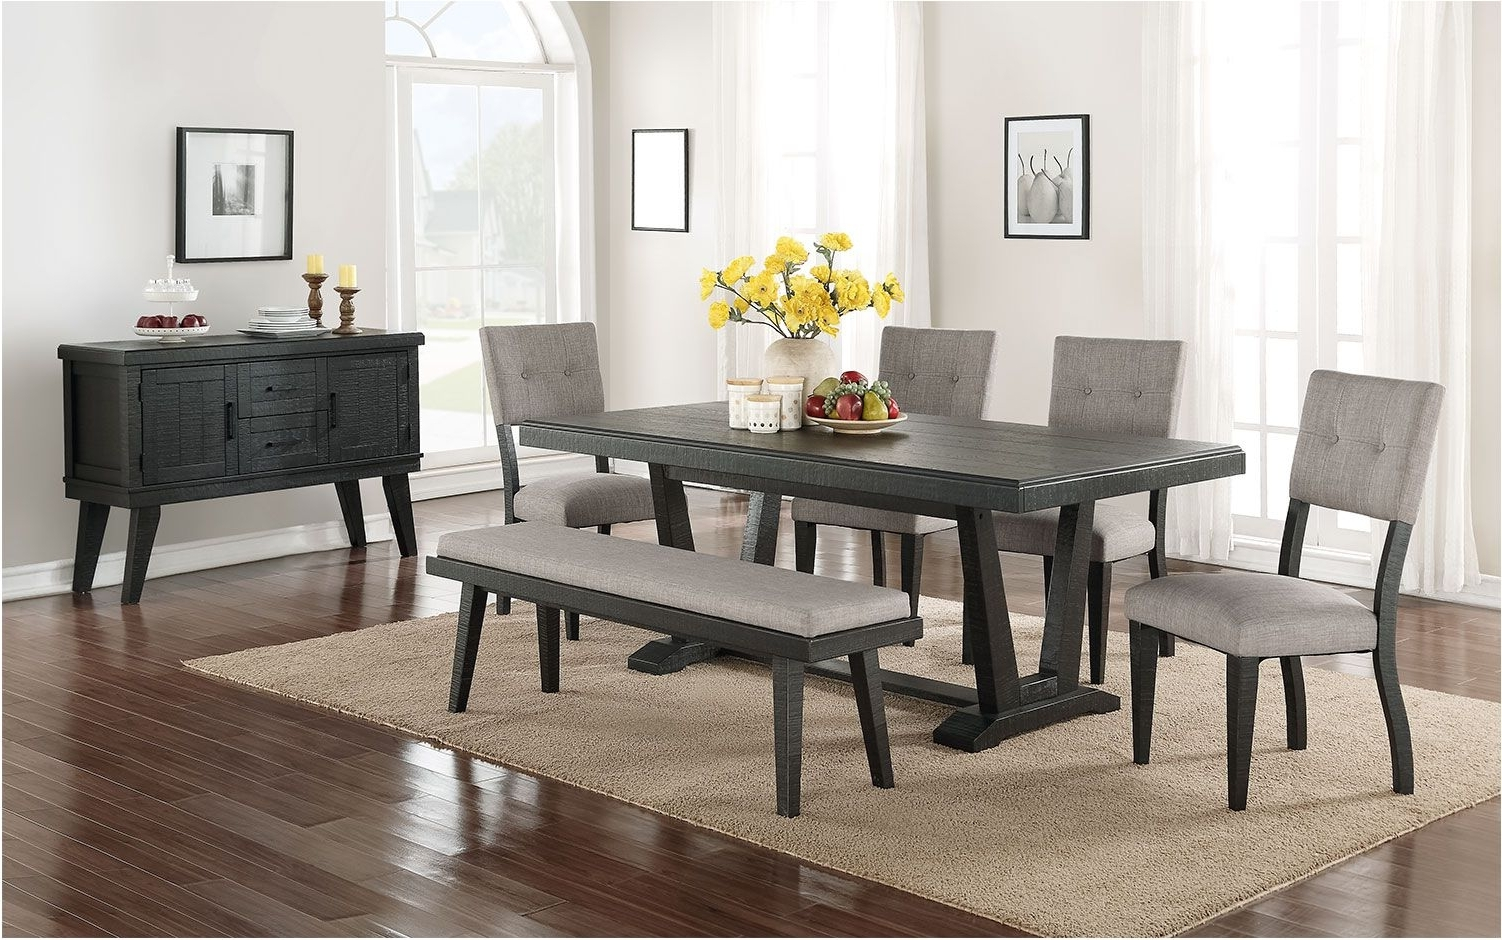 Leon Dining Tables For Newest Stunning 6 Piece Dining Room Set Black And Grey Leon – Dining Room (View 9 of 25)